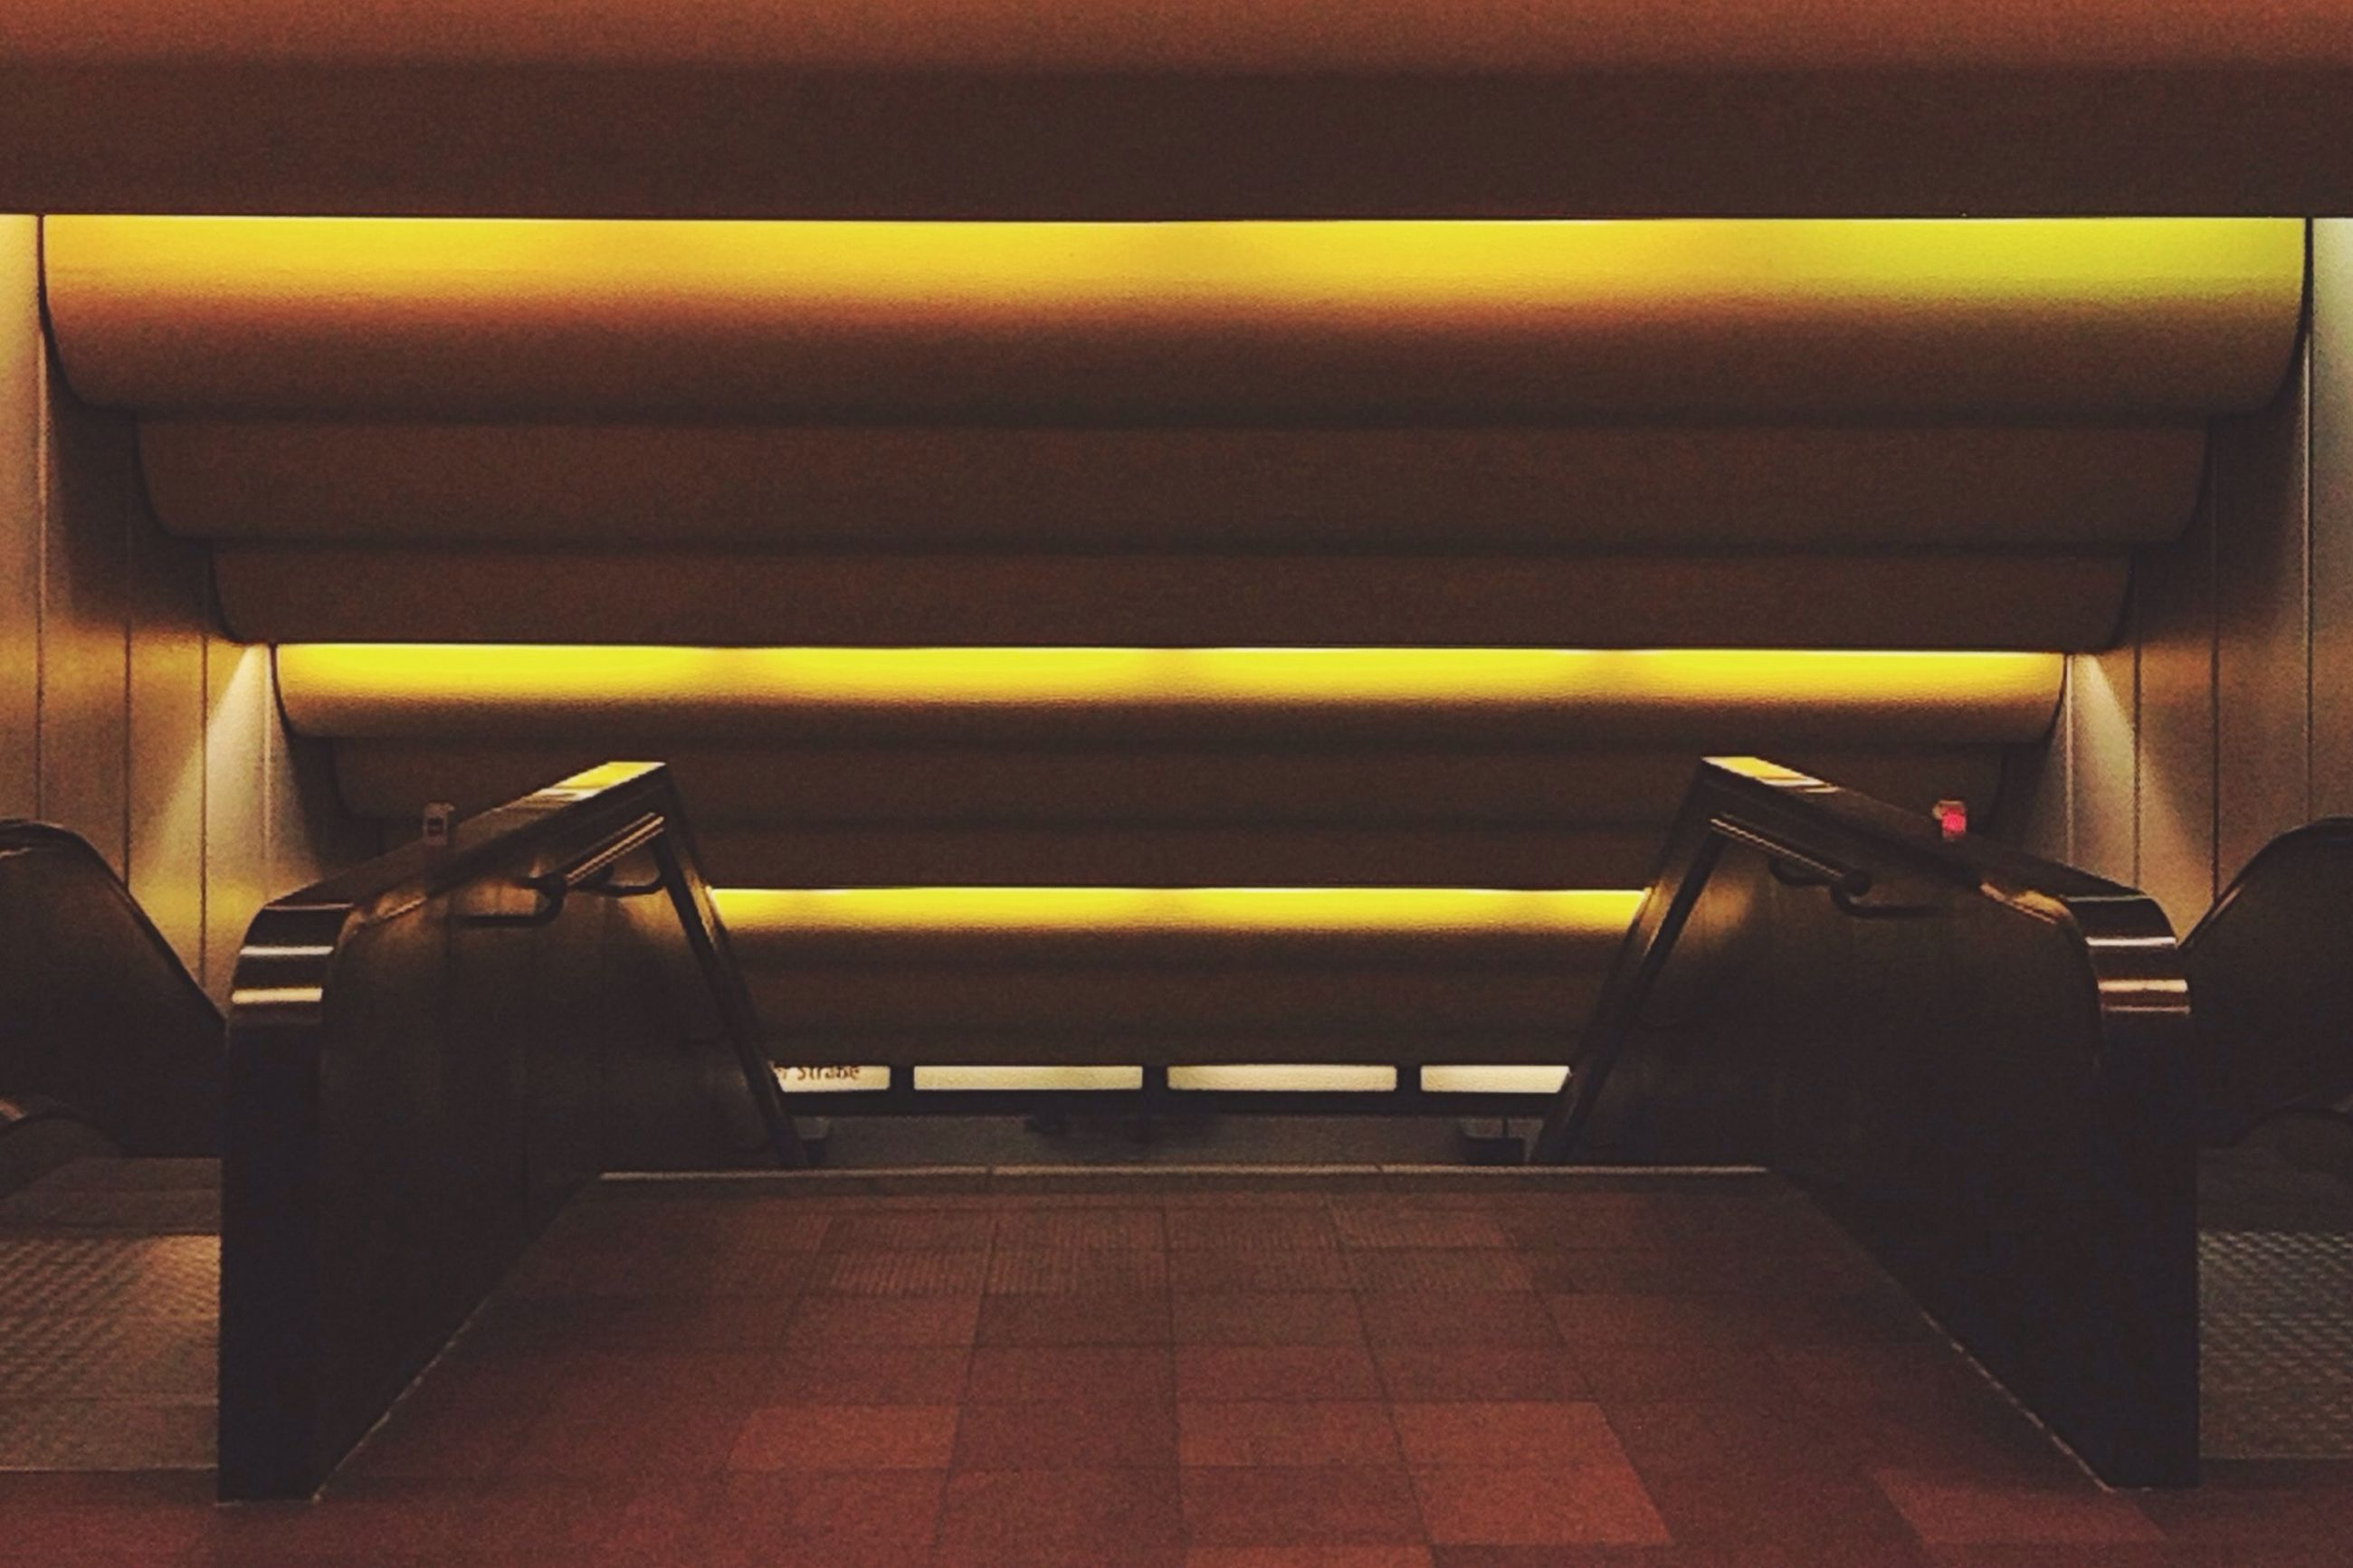 indoors, steps, steps and staircases, staircase, railing, high angle view, built structure, architecture, no people, empty, absence, wall - building feature, pattern, flooring, escalator, sunlight, day, yellow, transportation, seat